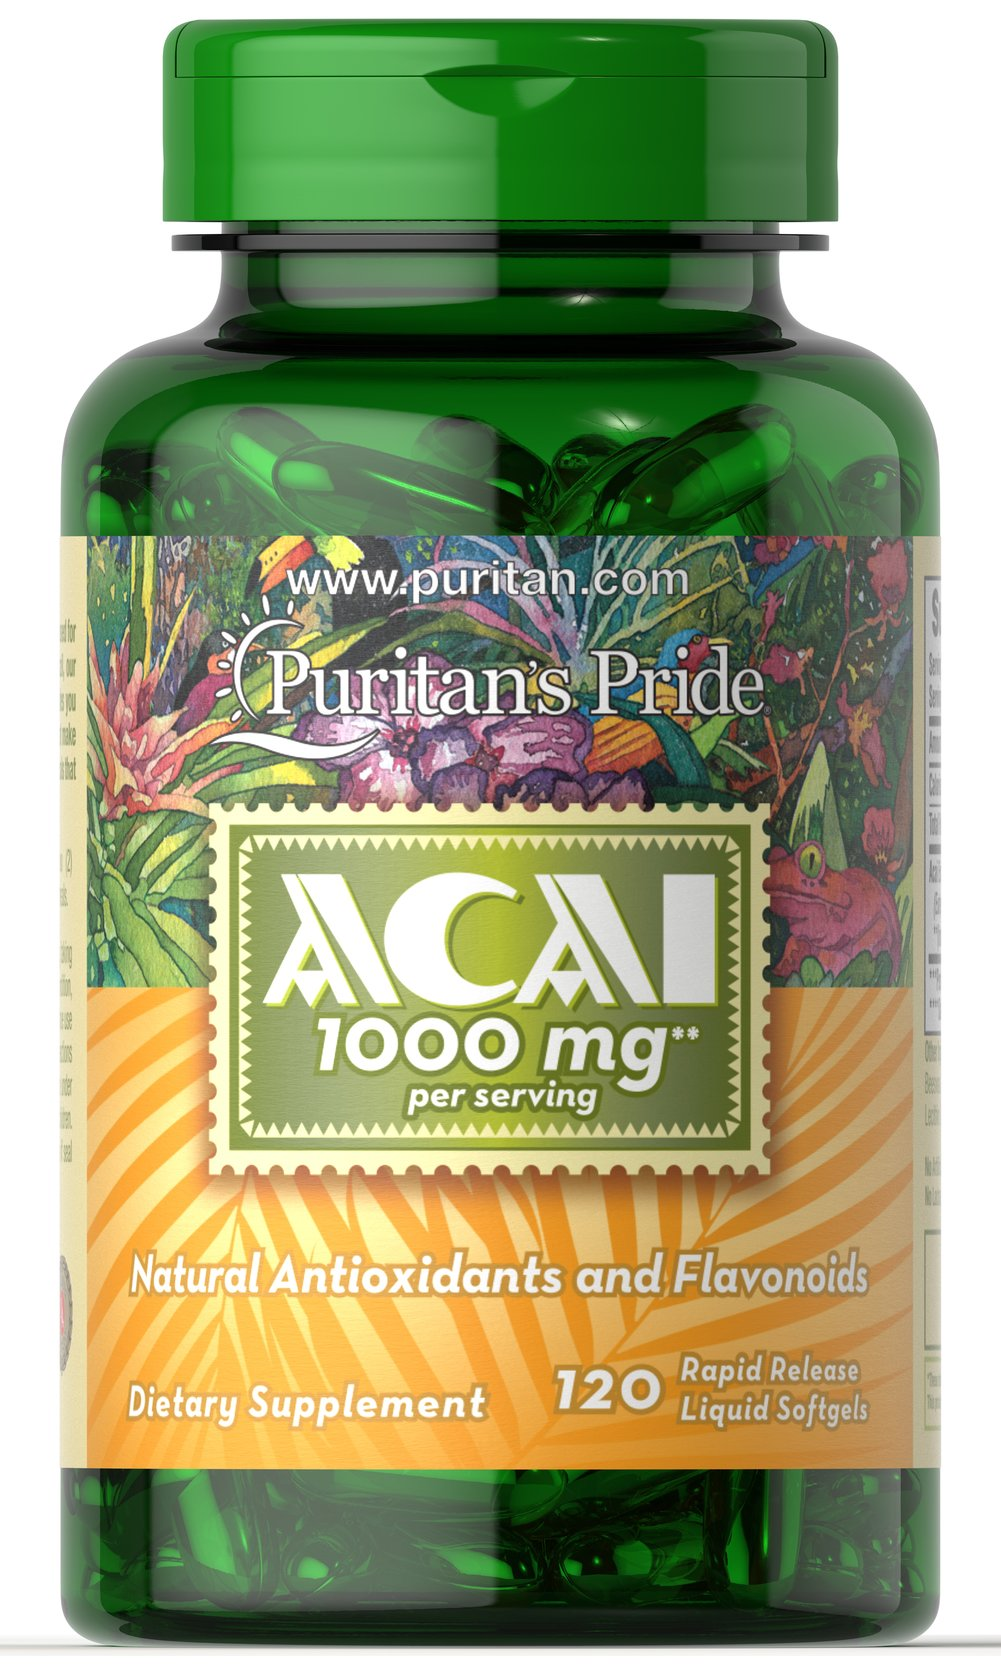 Acai 1000 mg Rapid-release liquid softgels <p></p>Contains 1000 mg Acai per serving (two softgels)<p></p>Contains natural flavonoids and antioxidants<p></p>Supports overall well-being**<p></p>Helps enrich the vitality of your body and soul**<p></p> 120 Softgels 1000 mg $15.67